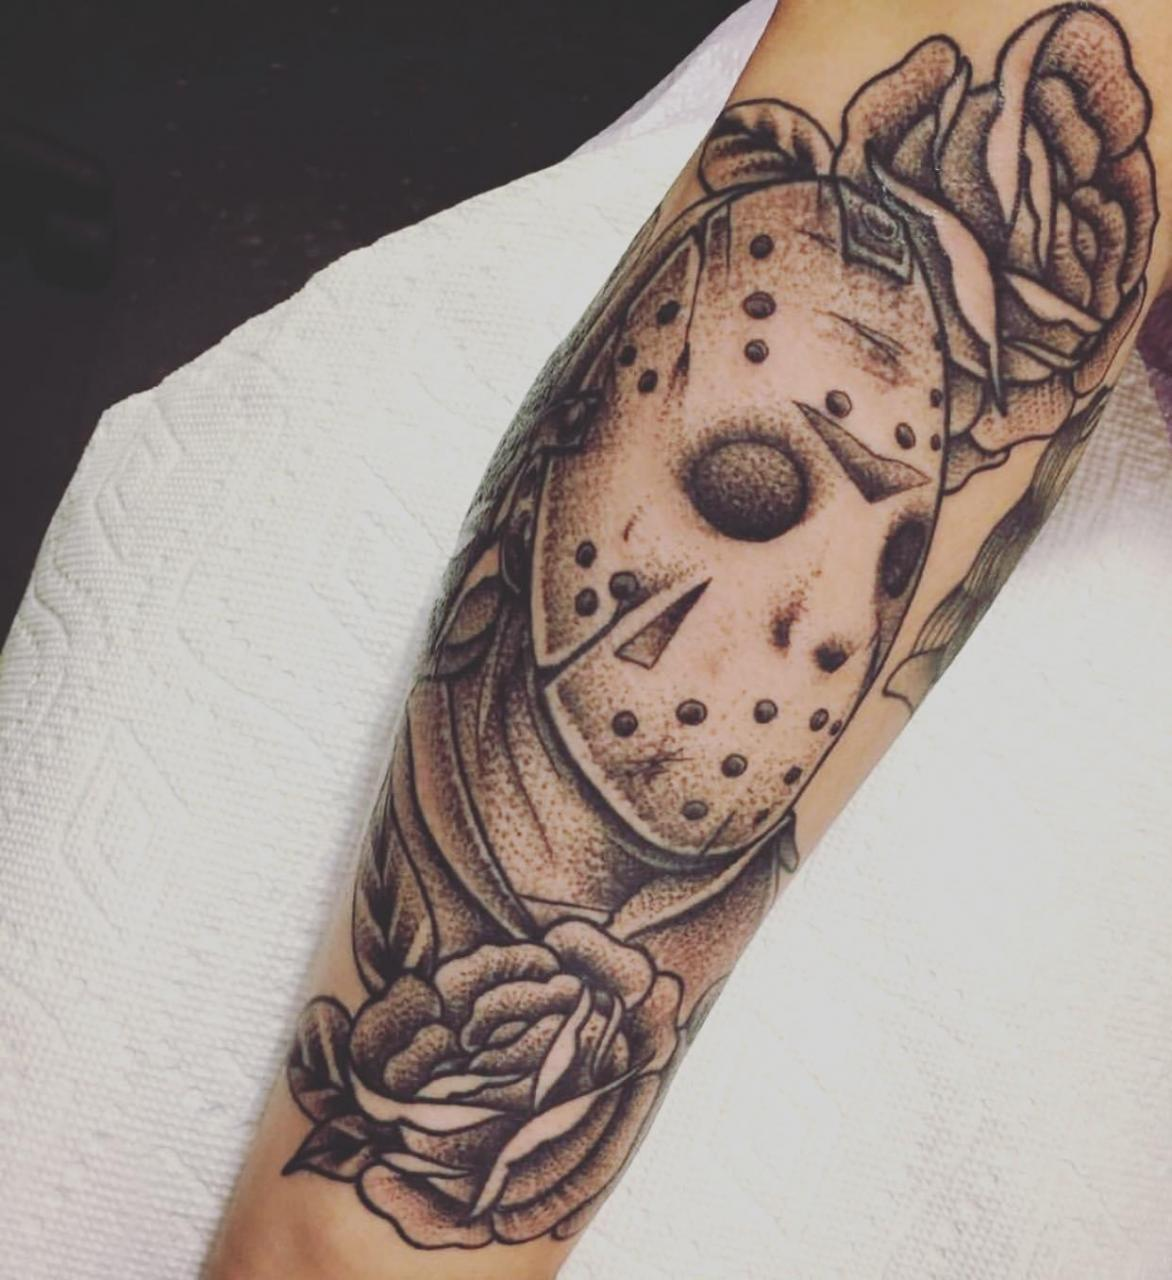 🍂Anyone into horror tattoos? This is a Jason piece I got done 🍂